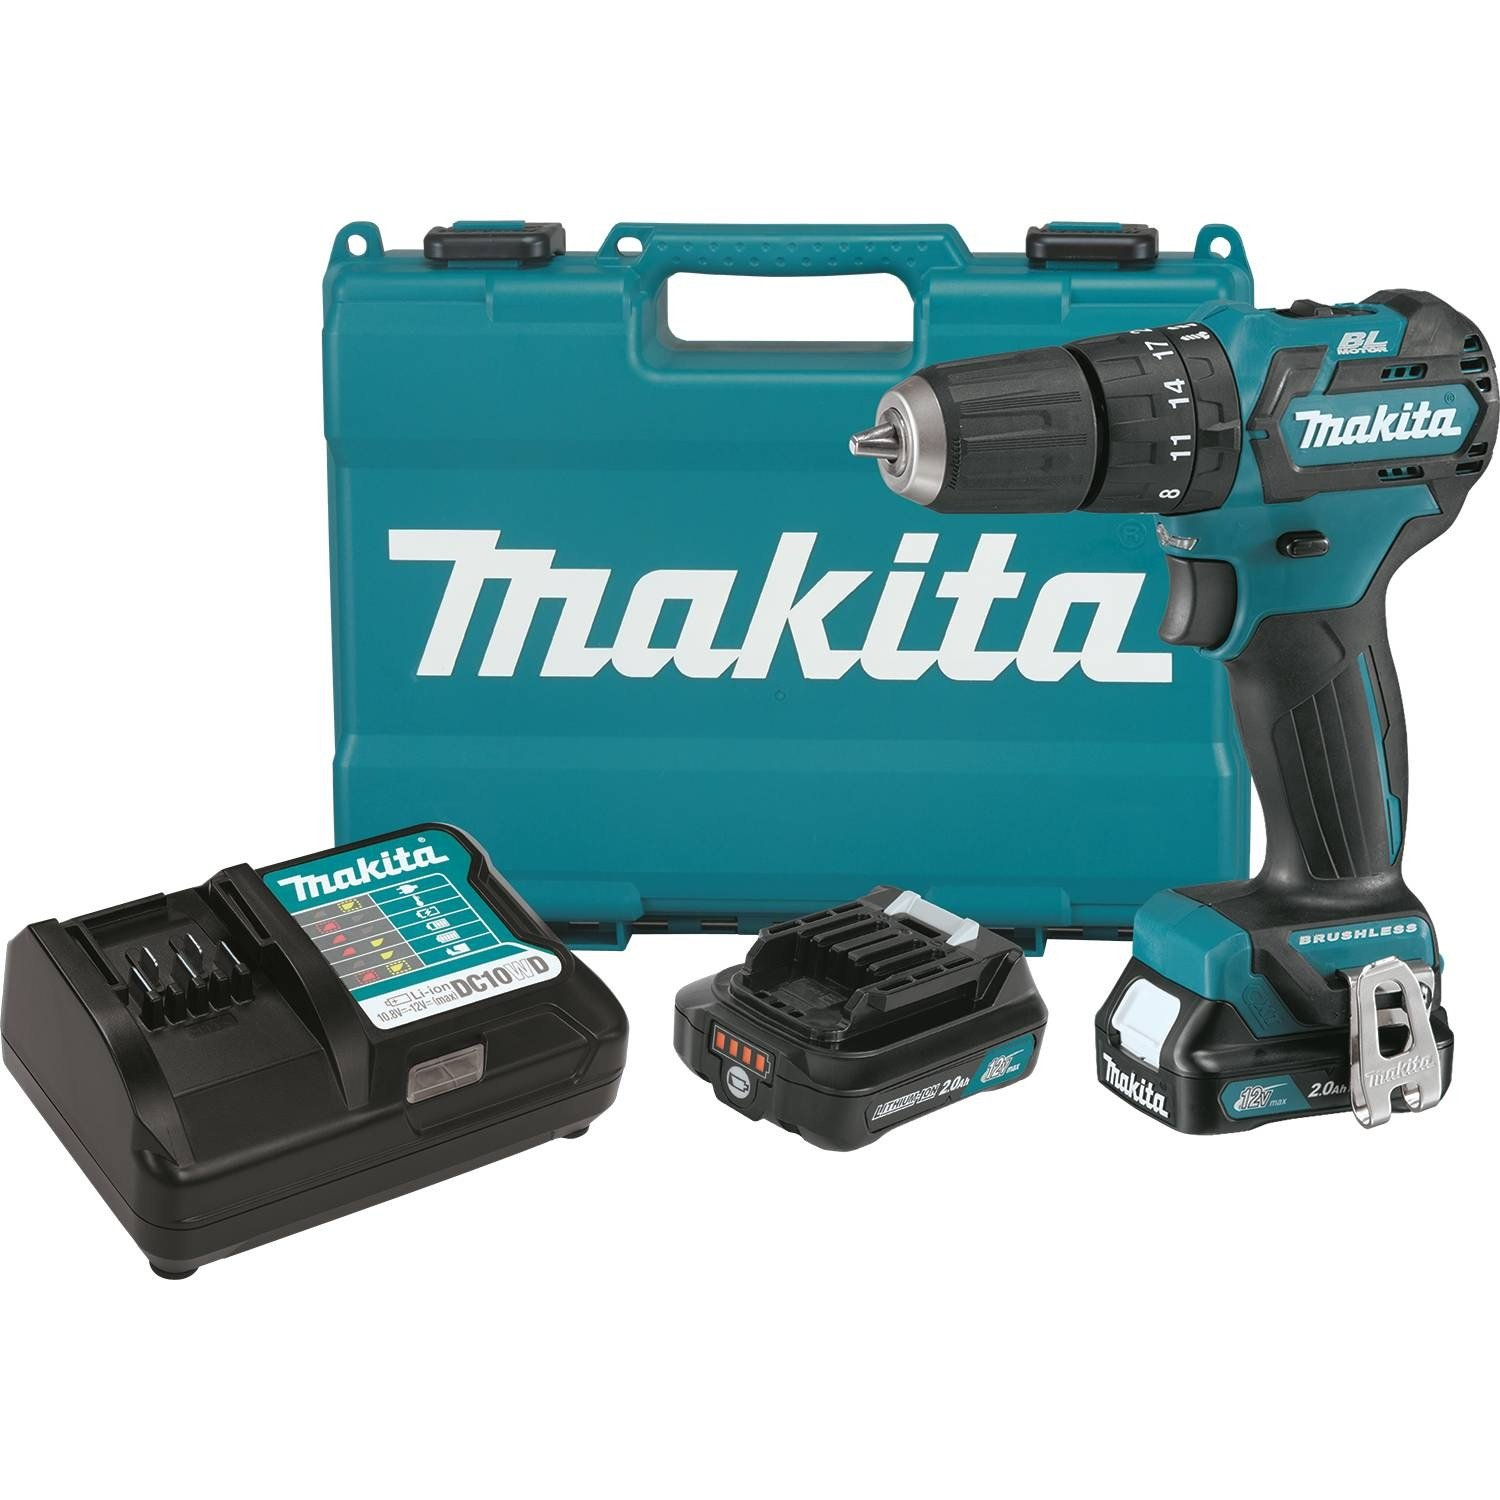 Makita PH05R1 12V max CXT Lithium-Ion Brushless Cordless 3 8 Hammer Driver-Drill Kit 2.0Ah